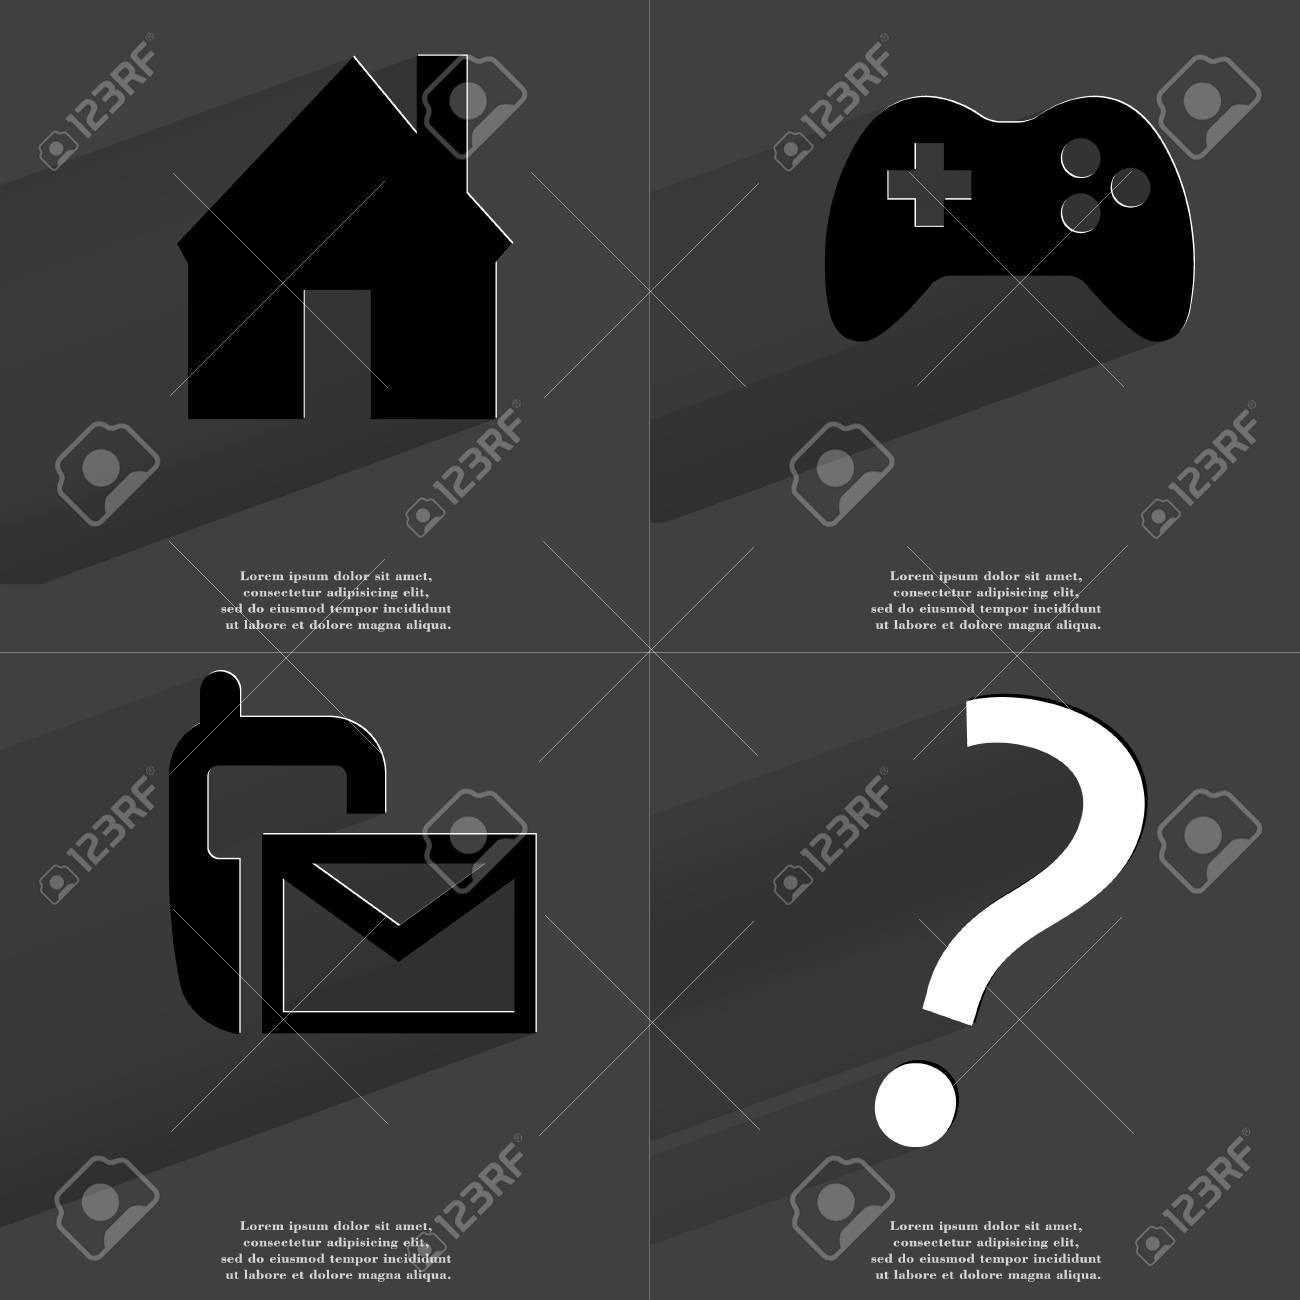 House gamepad sms icon question mark symbols with long shadow house gamepad sms icon question mark symbols with long shadow flat biocorpaavc Images